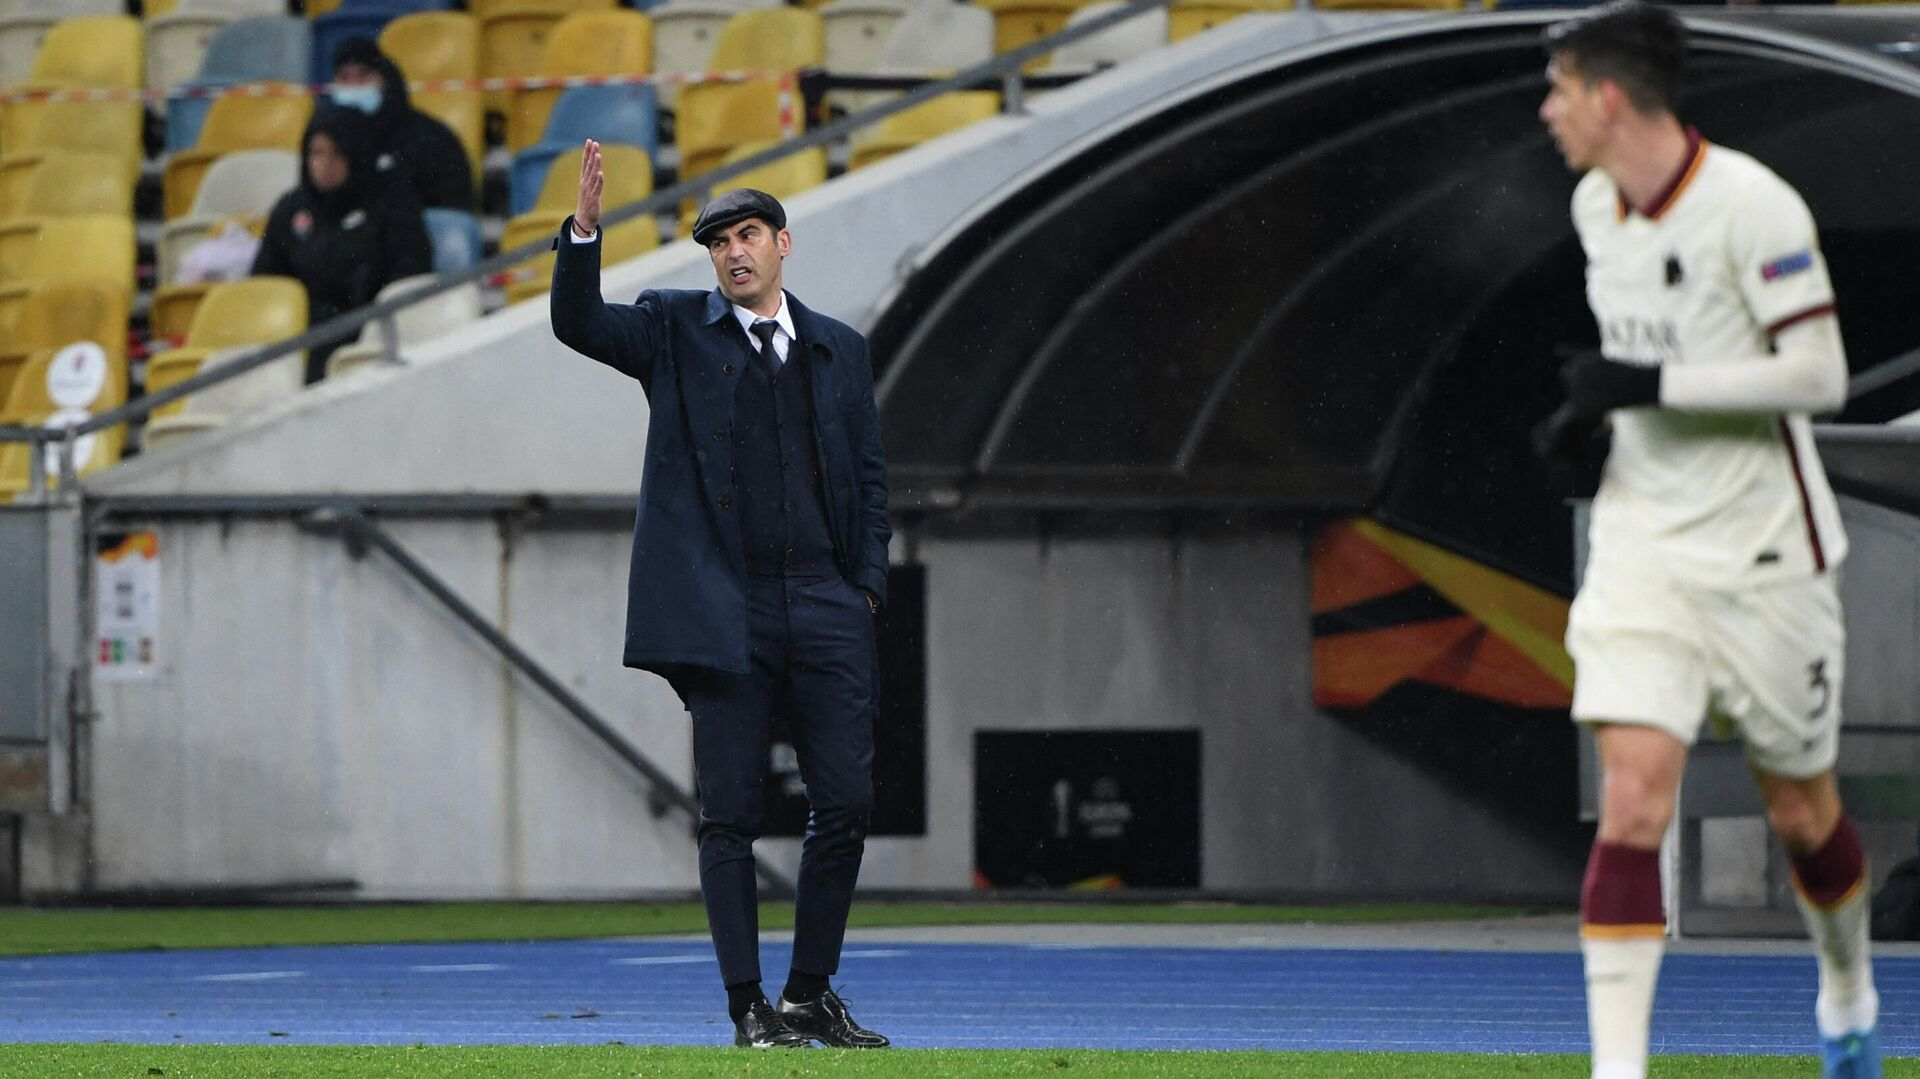 Roma's Portuguese coach Paulo Fonseca gestures from the sideline during the UEFA Europa League round of 16 second leg football match between Shakhtar Donetsk and Roma at the Olympiyski Stadium in Kiev on March 18, 2021. (Photo by Sergei SUPINSKY / AFP) - РИА Новости, 1920, 19.03.2021